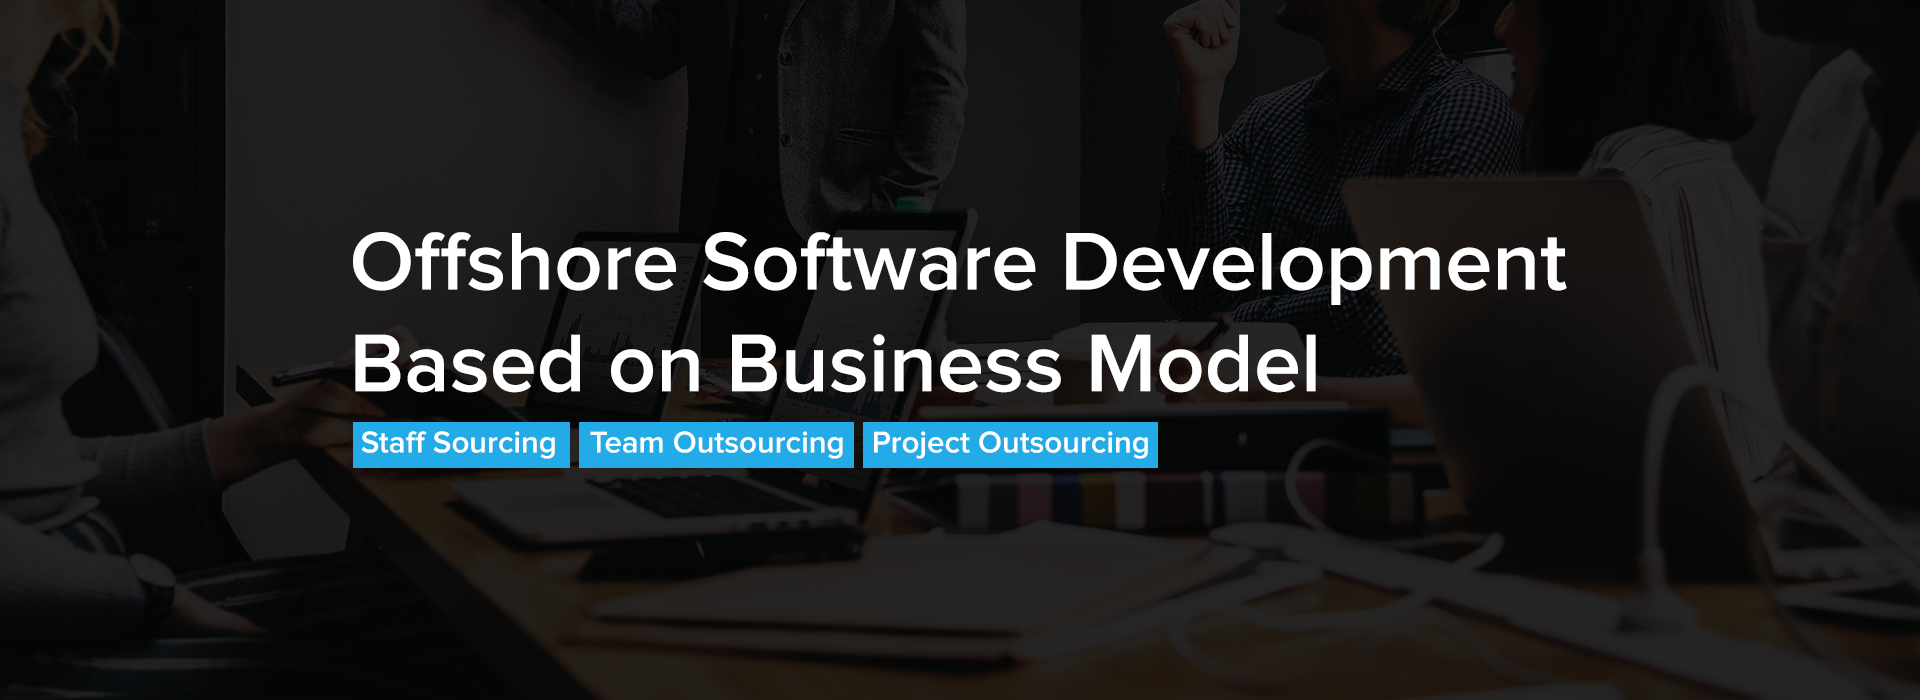 Offshore-Software-Development-Based-on-Business-Model-Featured-Image